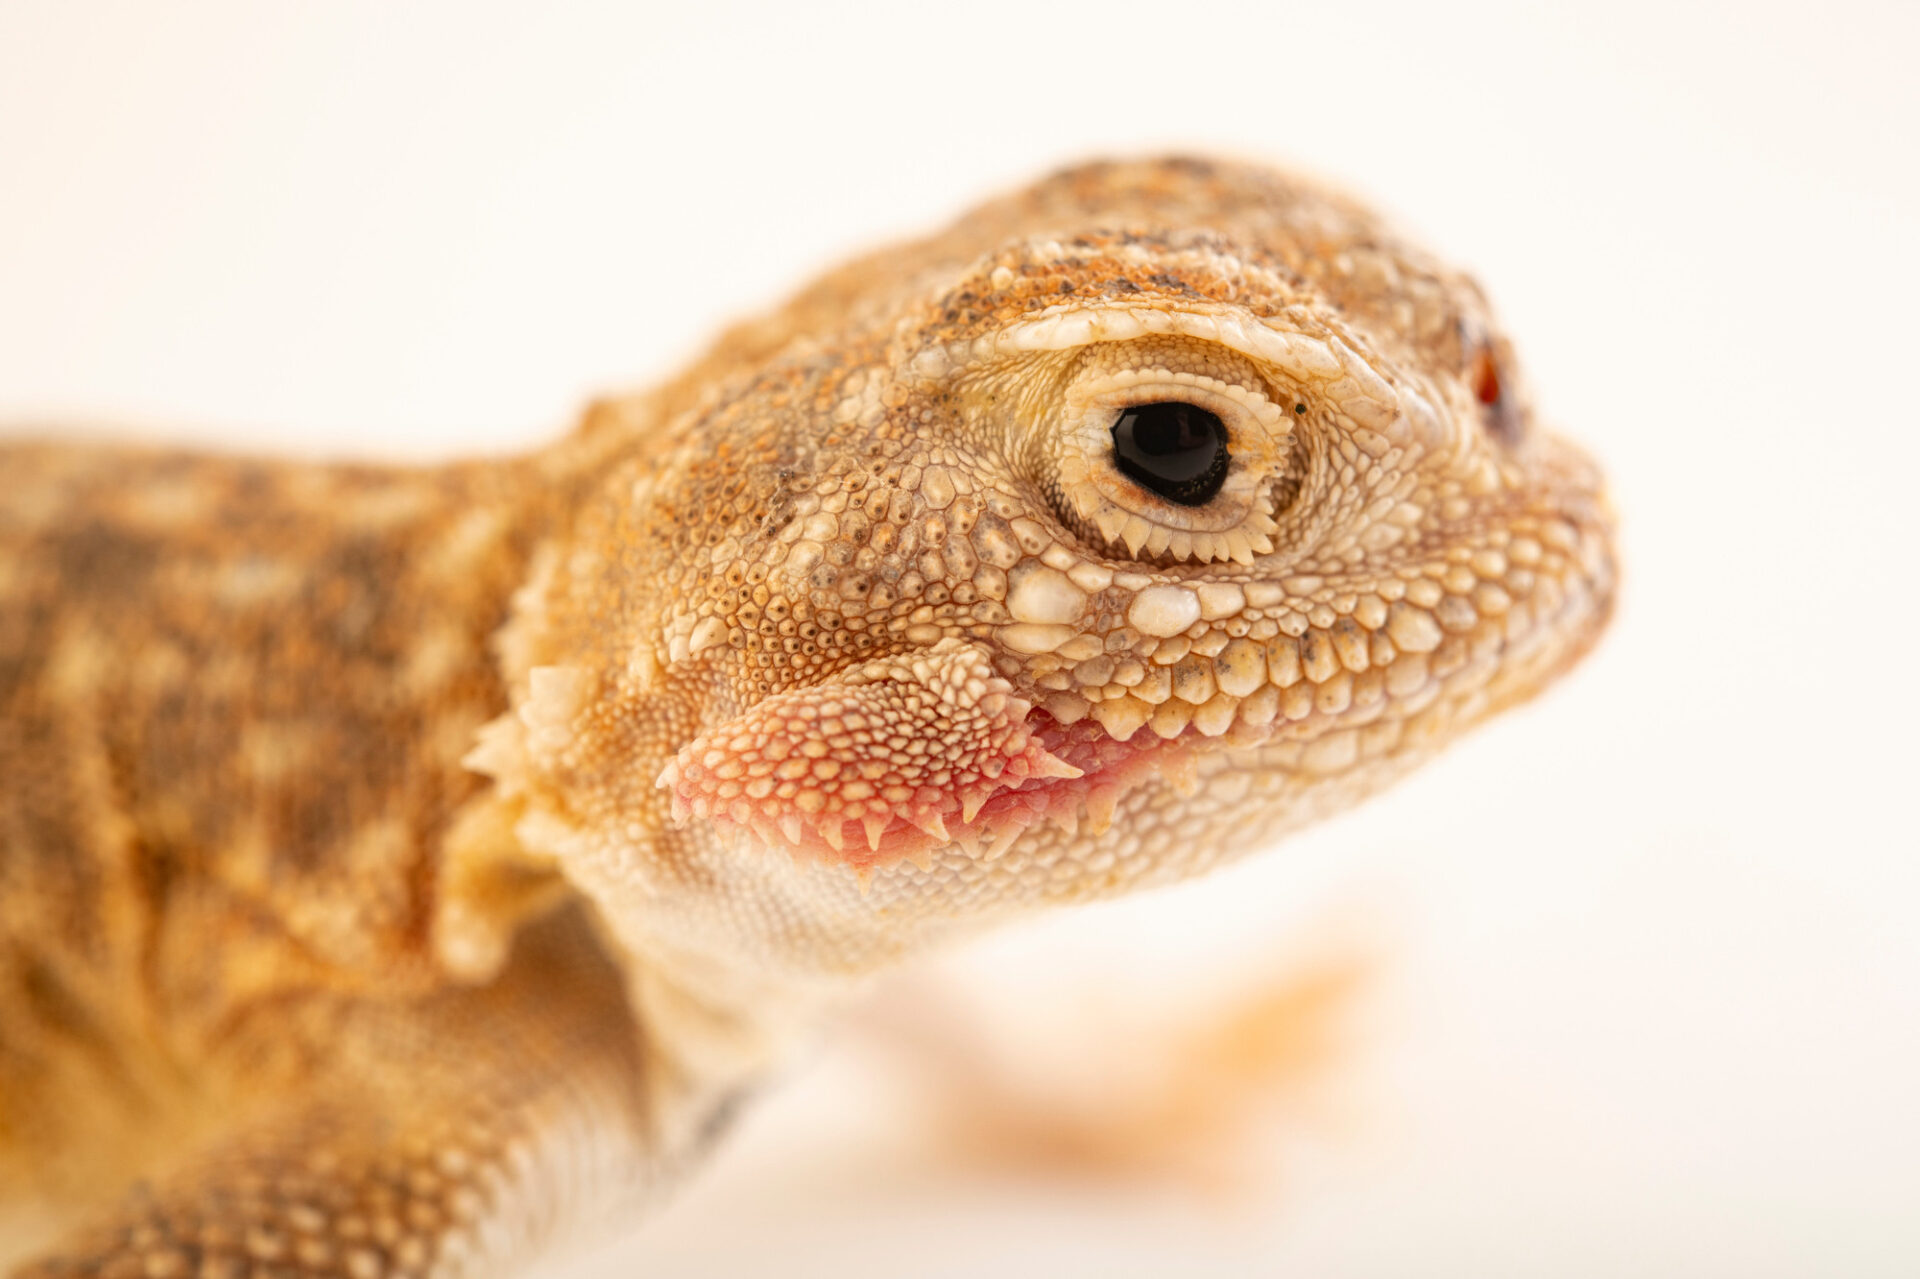 Photo: A secret toad-headed agama (Phrynocephalus mystaceus mystaceus) at Prague Zoo. It has cheek flaps that it can extend out the sides of its head to make its mouth look wider, scaring off some predators.